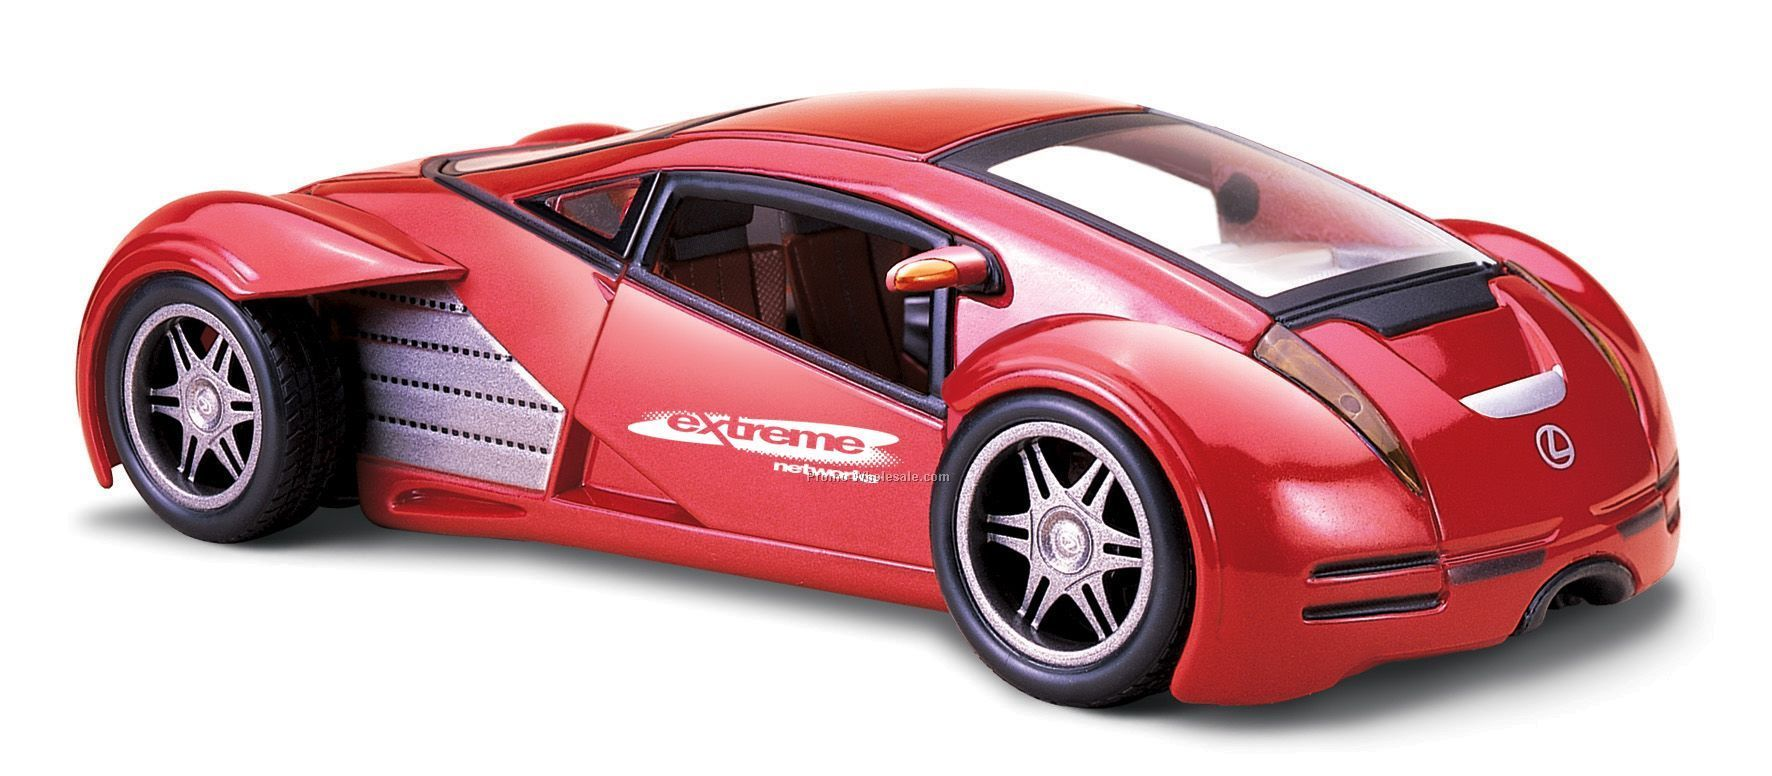 "7""x2-1/2""x3"" Lexus Futuristic Concept Die Cast Replica Sports Car"